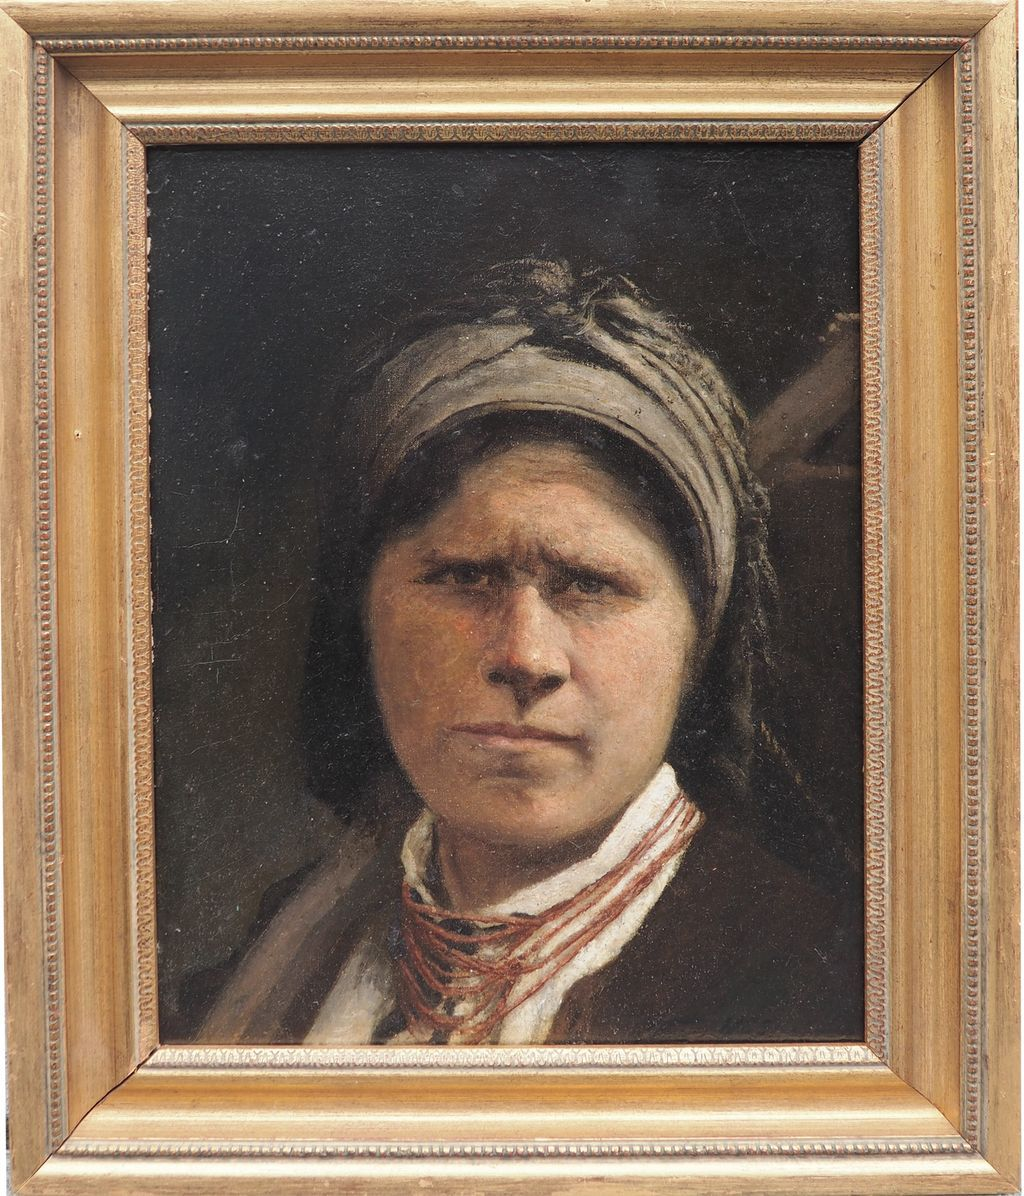 Peasant woman with hoe antique Ukrainian Russian oil painting by Kovalenko